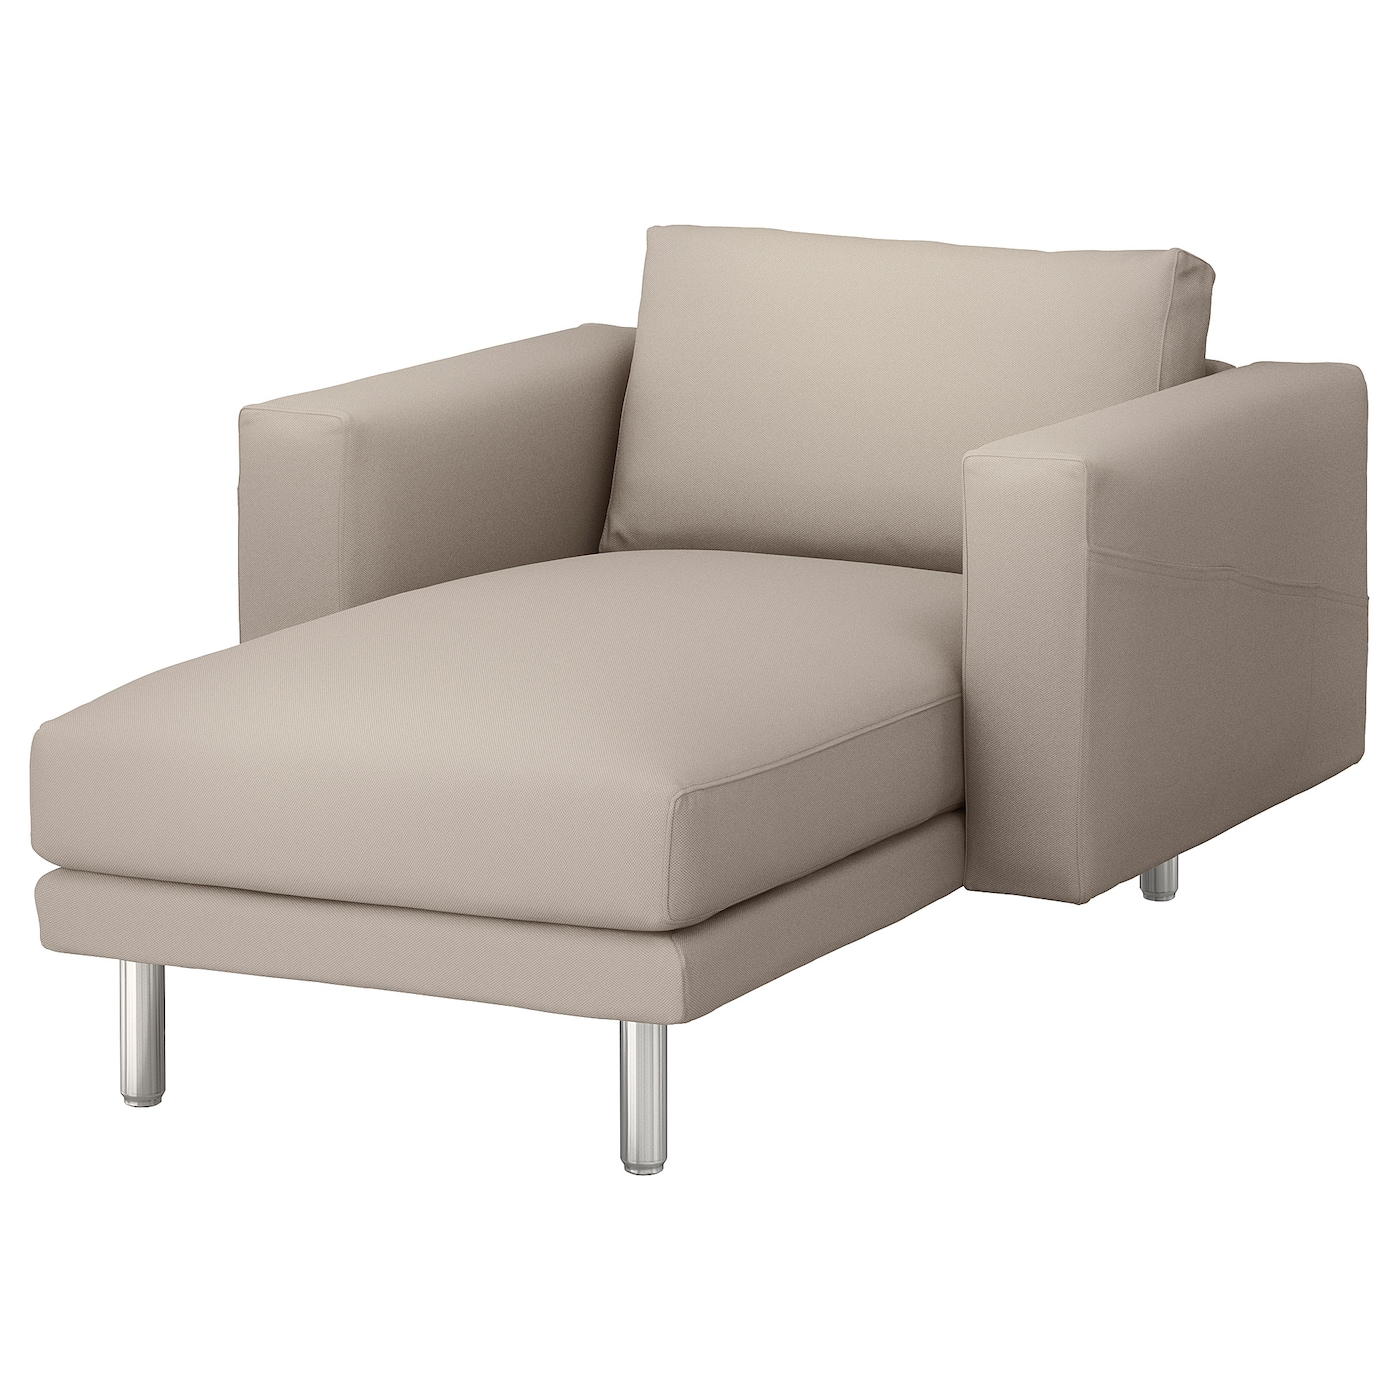 Chaise en teck ikea 28 images kivik 3 seat sofa with for Chaise longue jardin prix